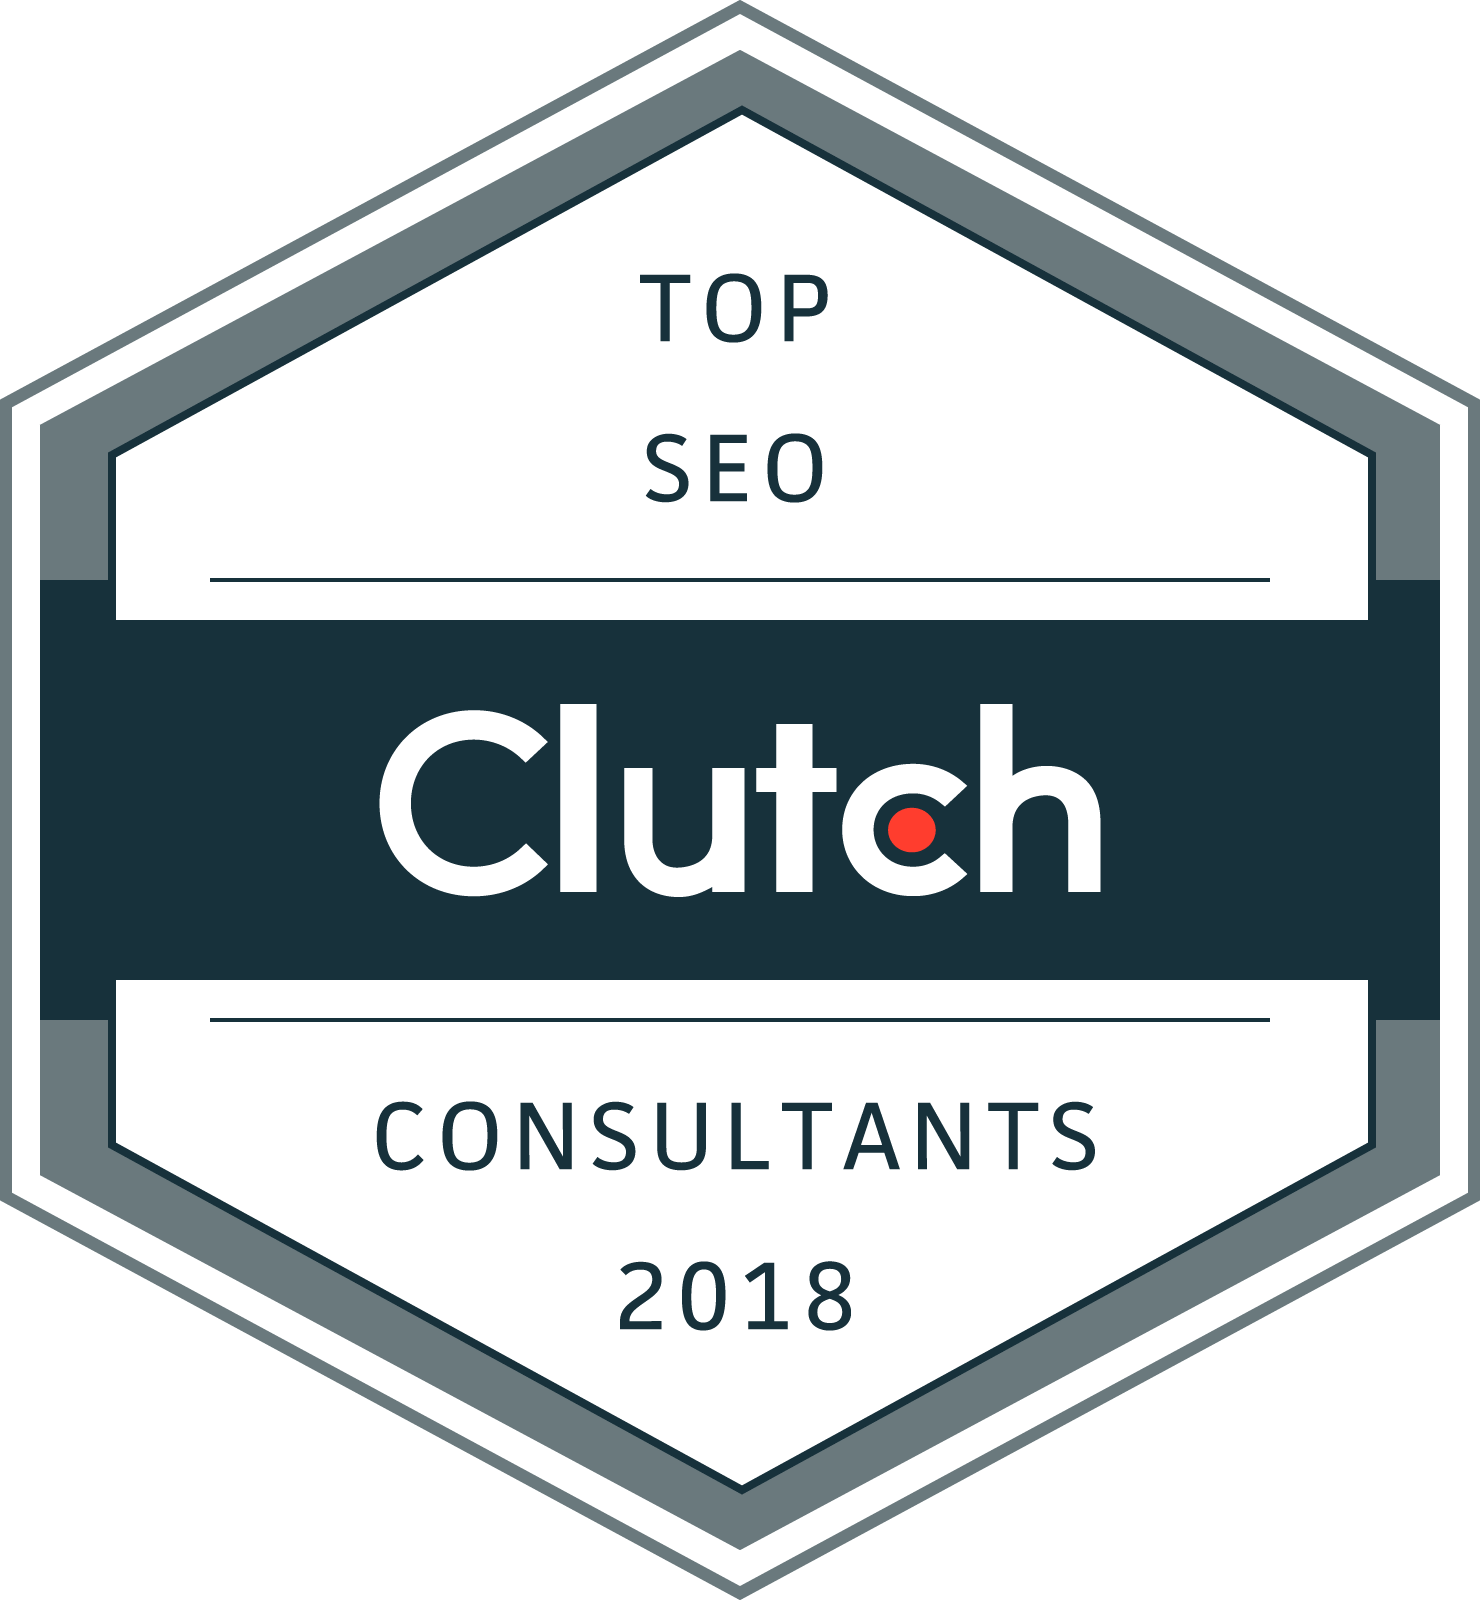 The SEO Works rated a top SEO Consultant in the UK